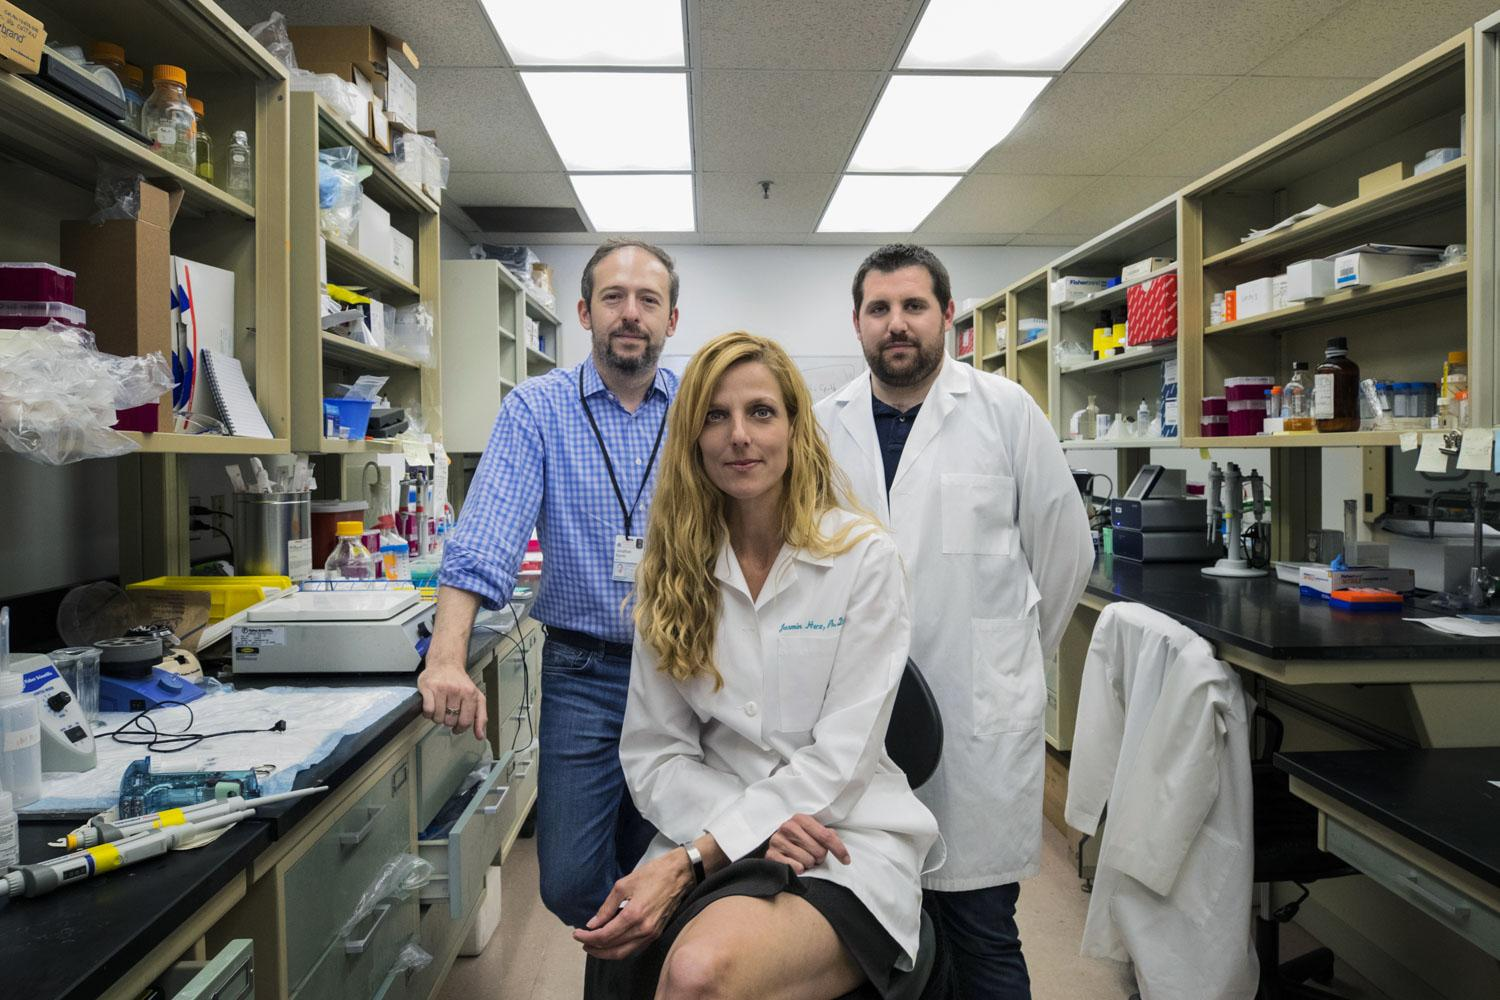 """The research team included, from left, Jonathan Kipnis, Jasmin Herz and Antoine Louveau. Kipnis called the research's potential """"beyond exciting."""""""